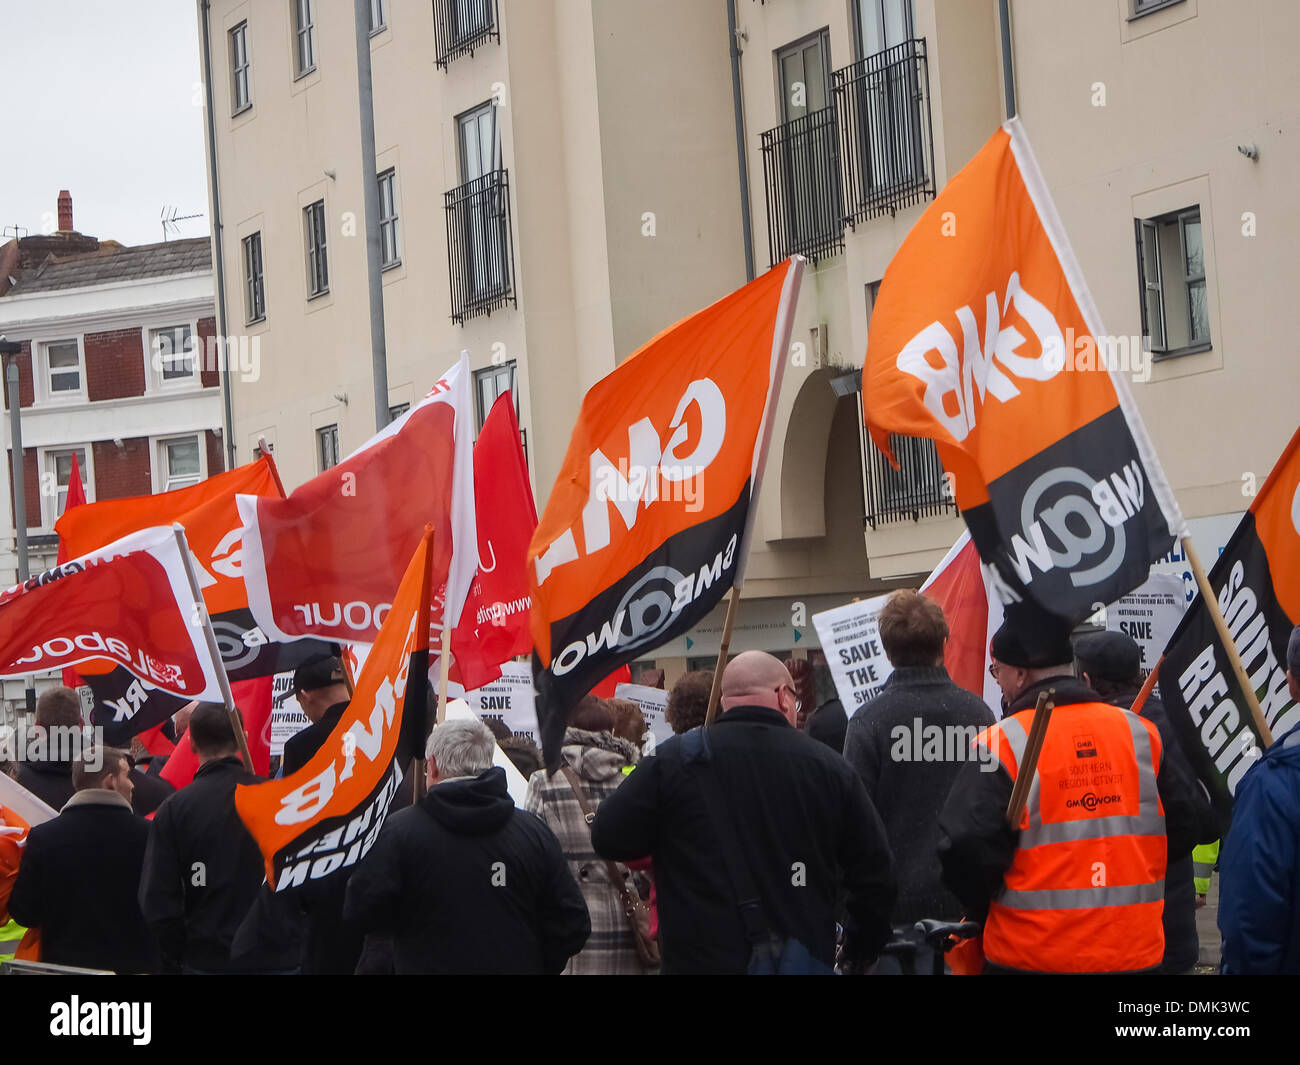 Portsmouth, UK. 14th December 2013. Hundreds of BAE workers protest against the possible closure of the BAE shipbuilding facility. Trade unions were heavily represented at the Protest with many workers carrying union banners and flags Credit:  simon evans/Alamy Live News - Stock Image